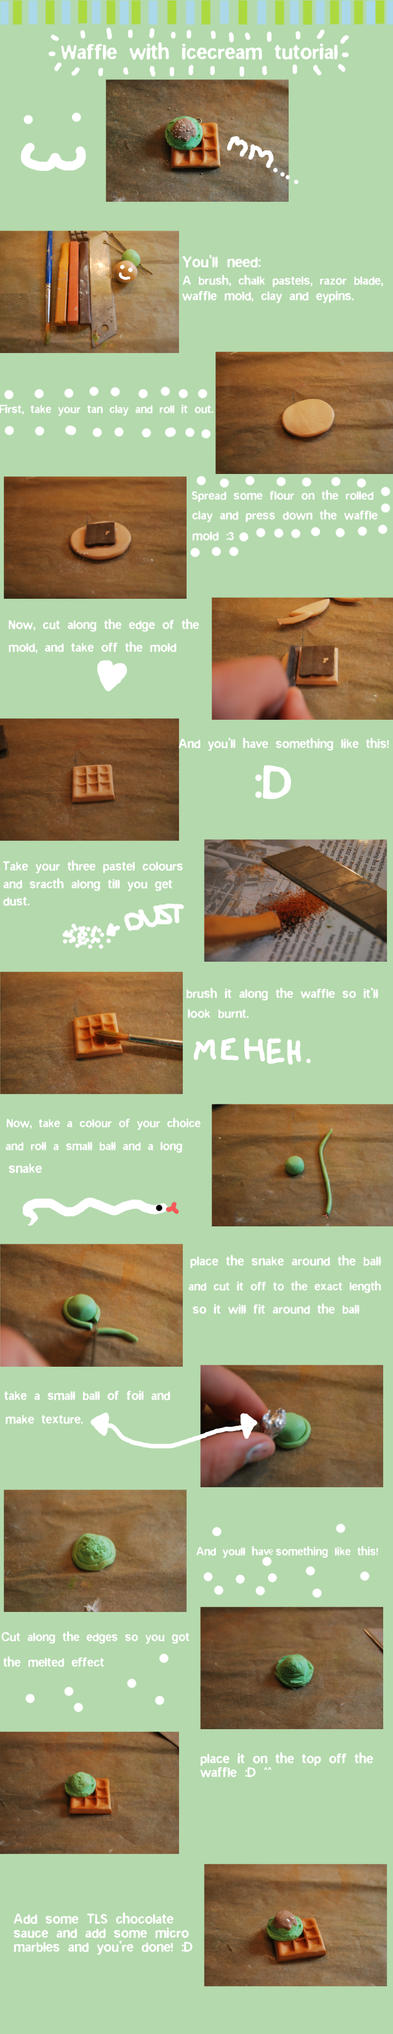 Waffle tutorial :D by SolenGV